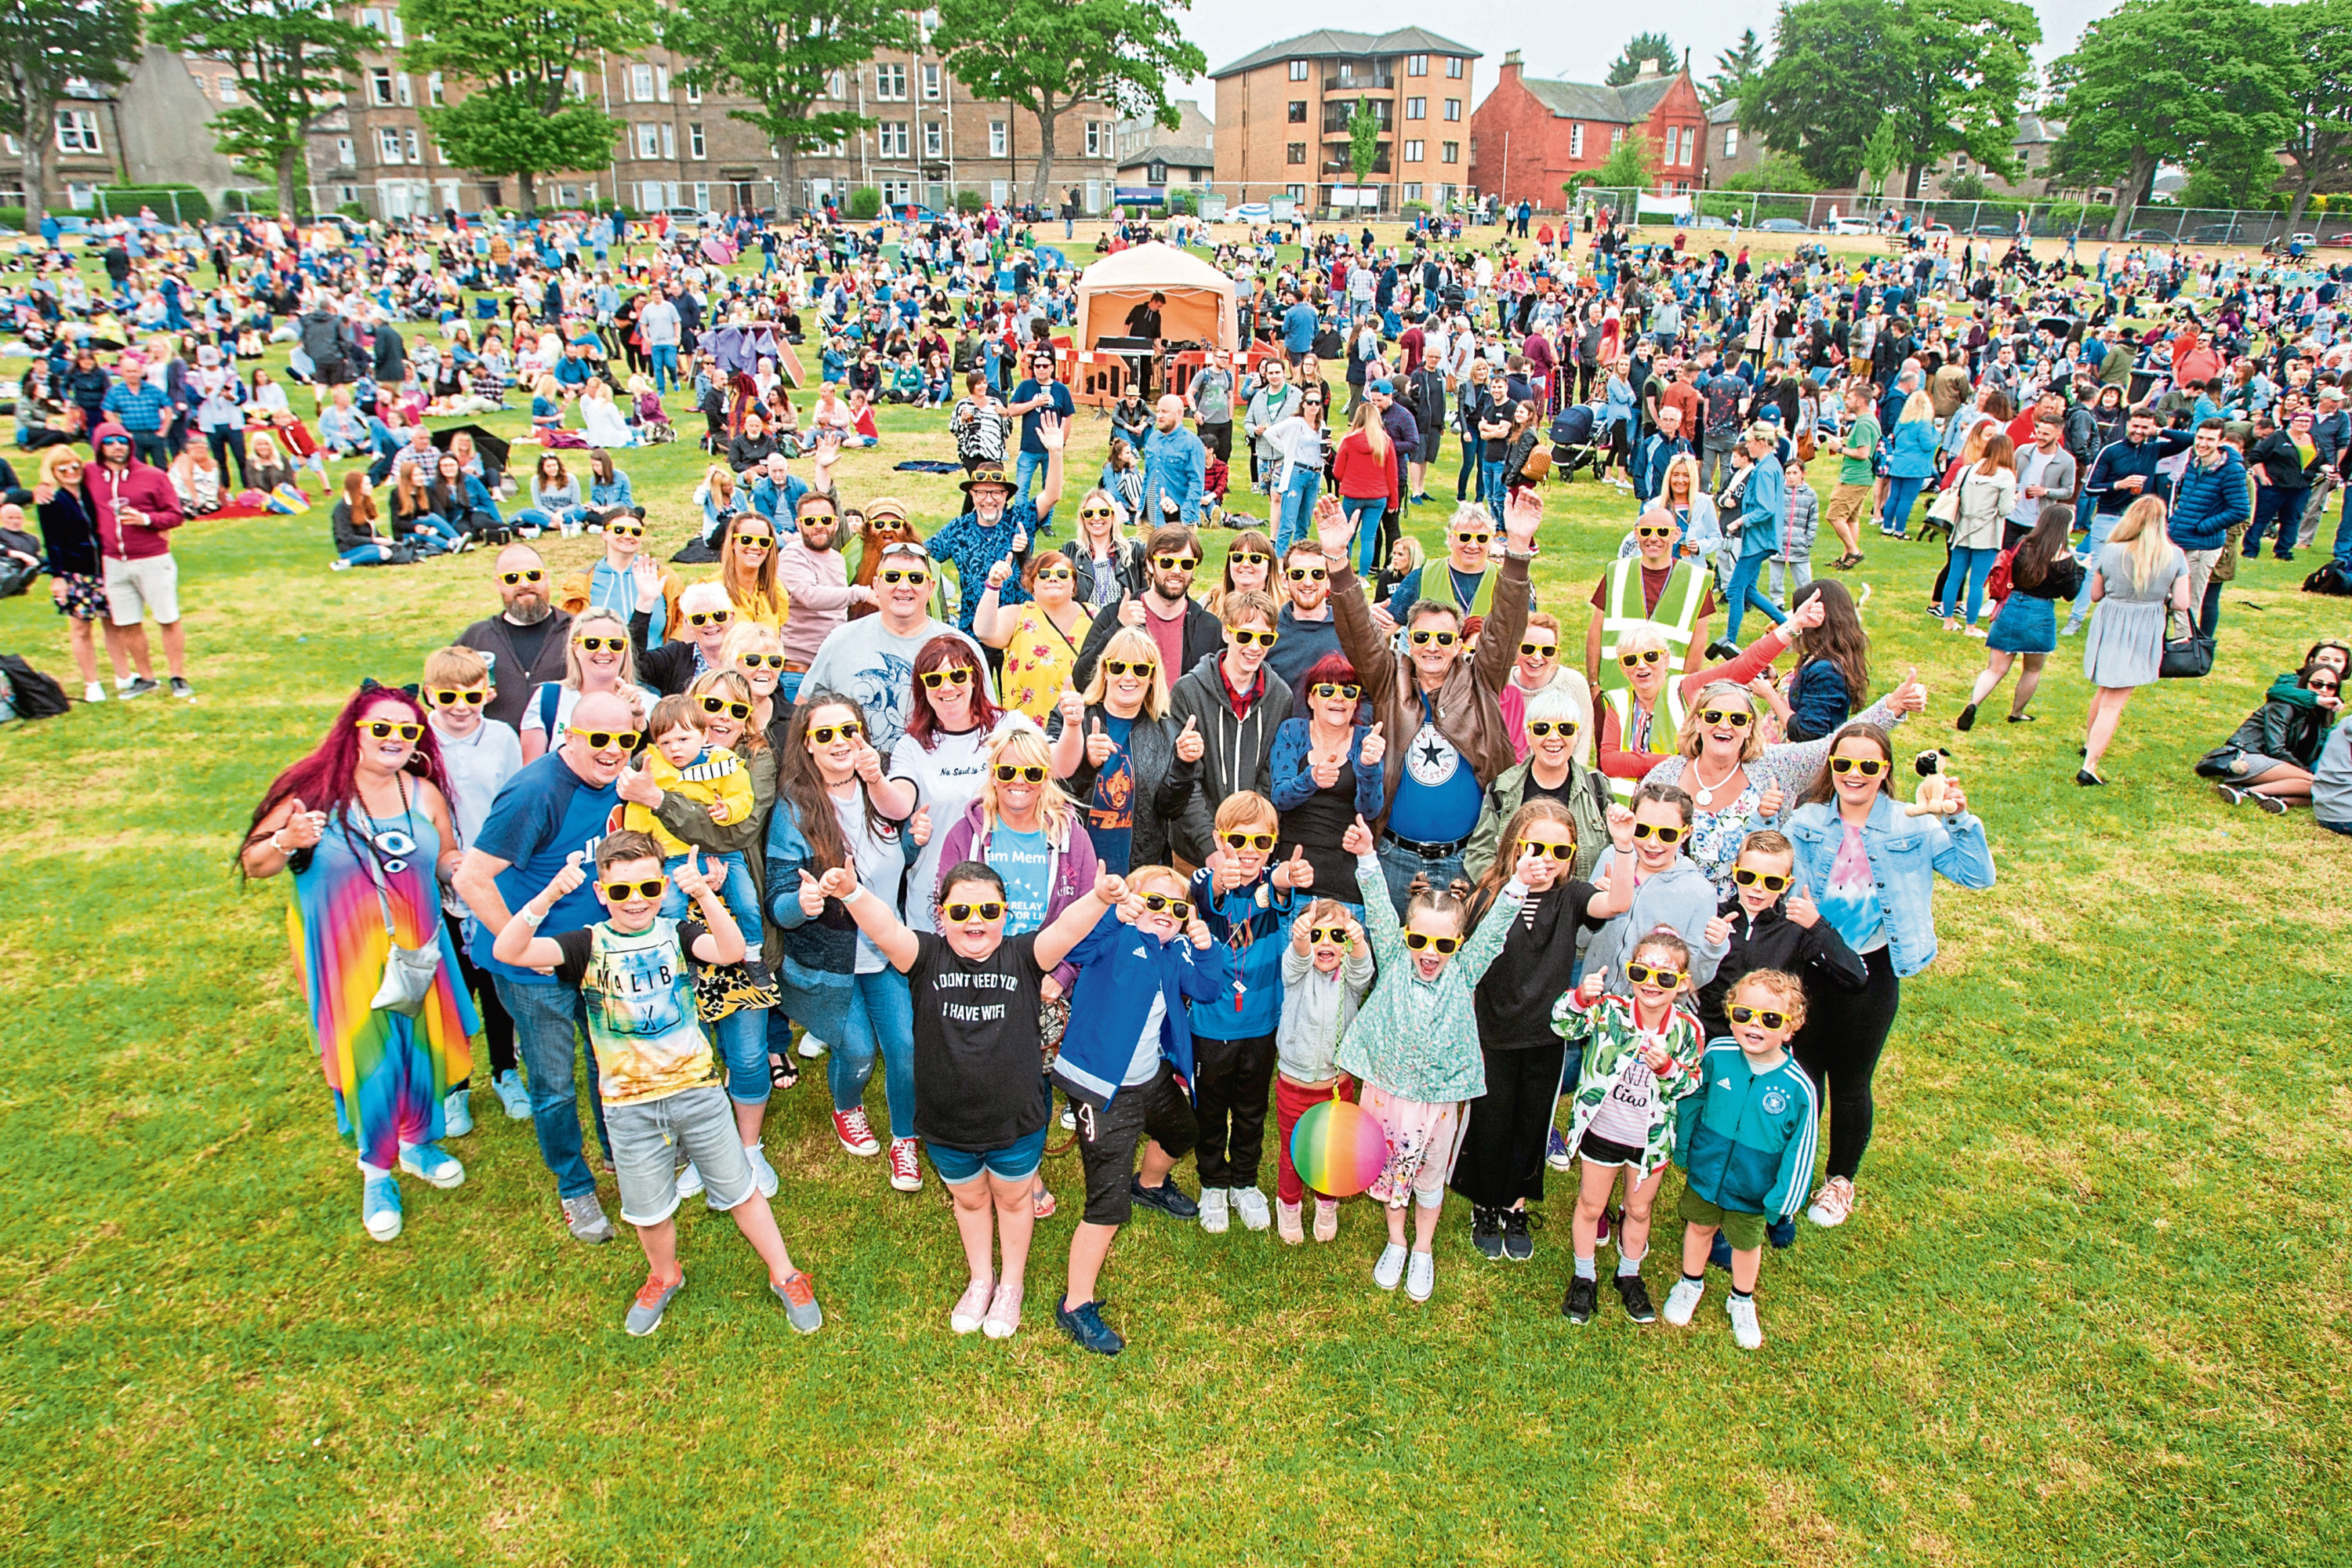 Revellers at this month's WestFest donned the yellow Sunny Dundee sunglasses